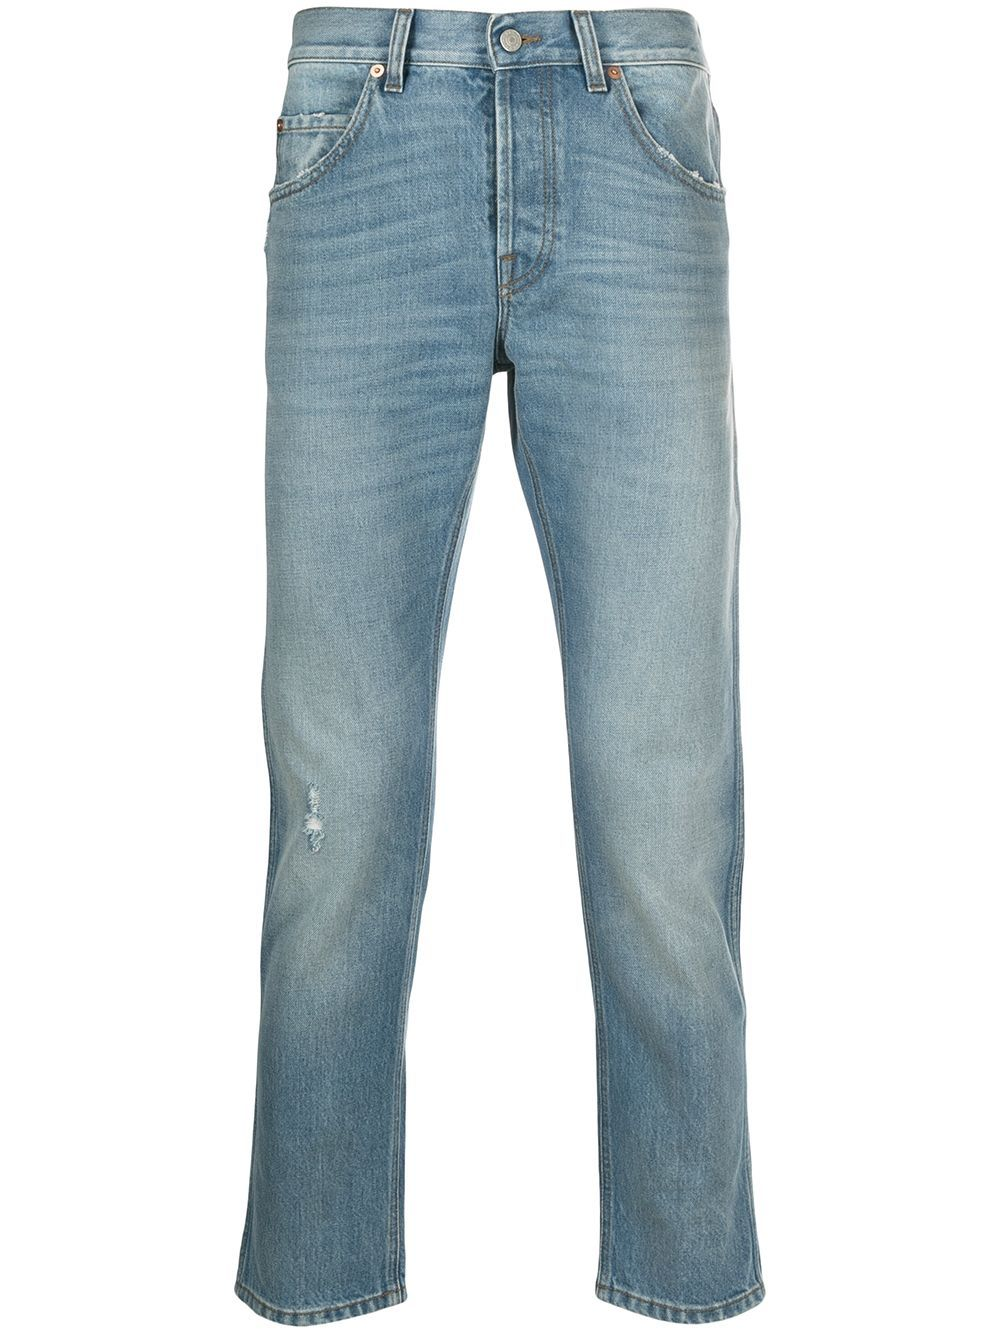 Picture of Gucci   Tapered 5Pkt Jeans Eco Bleach Wshd